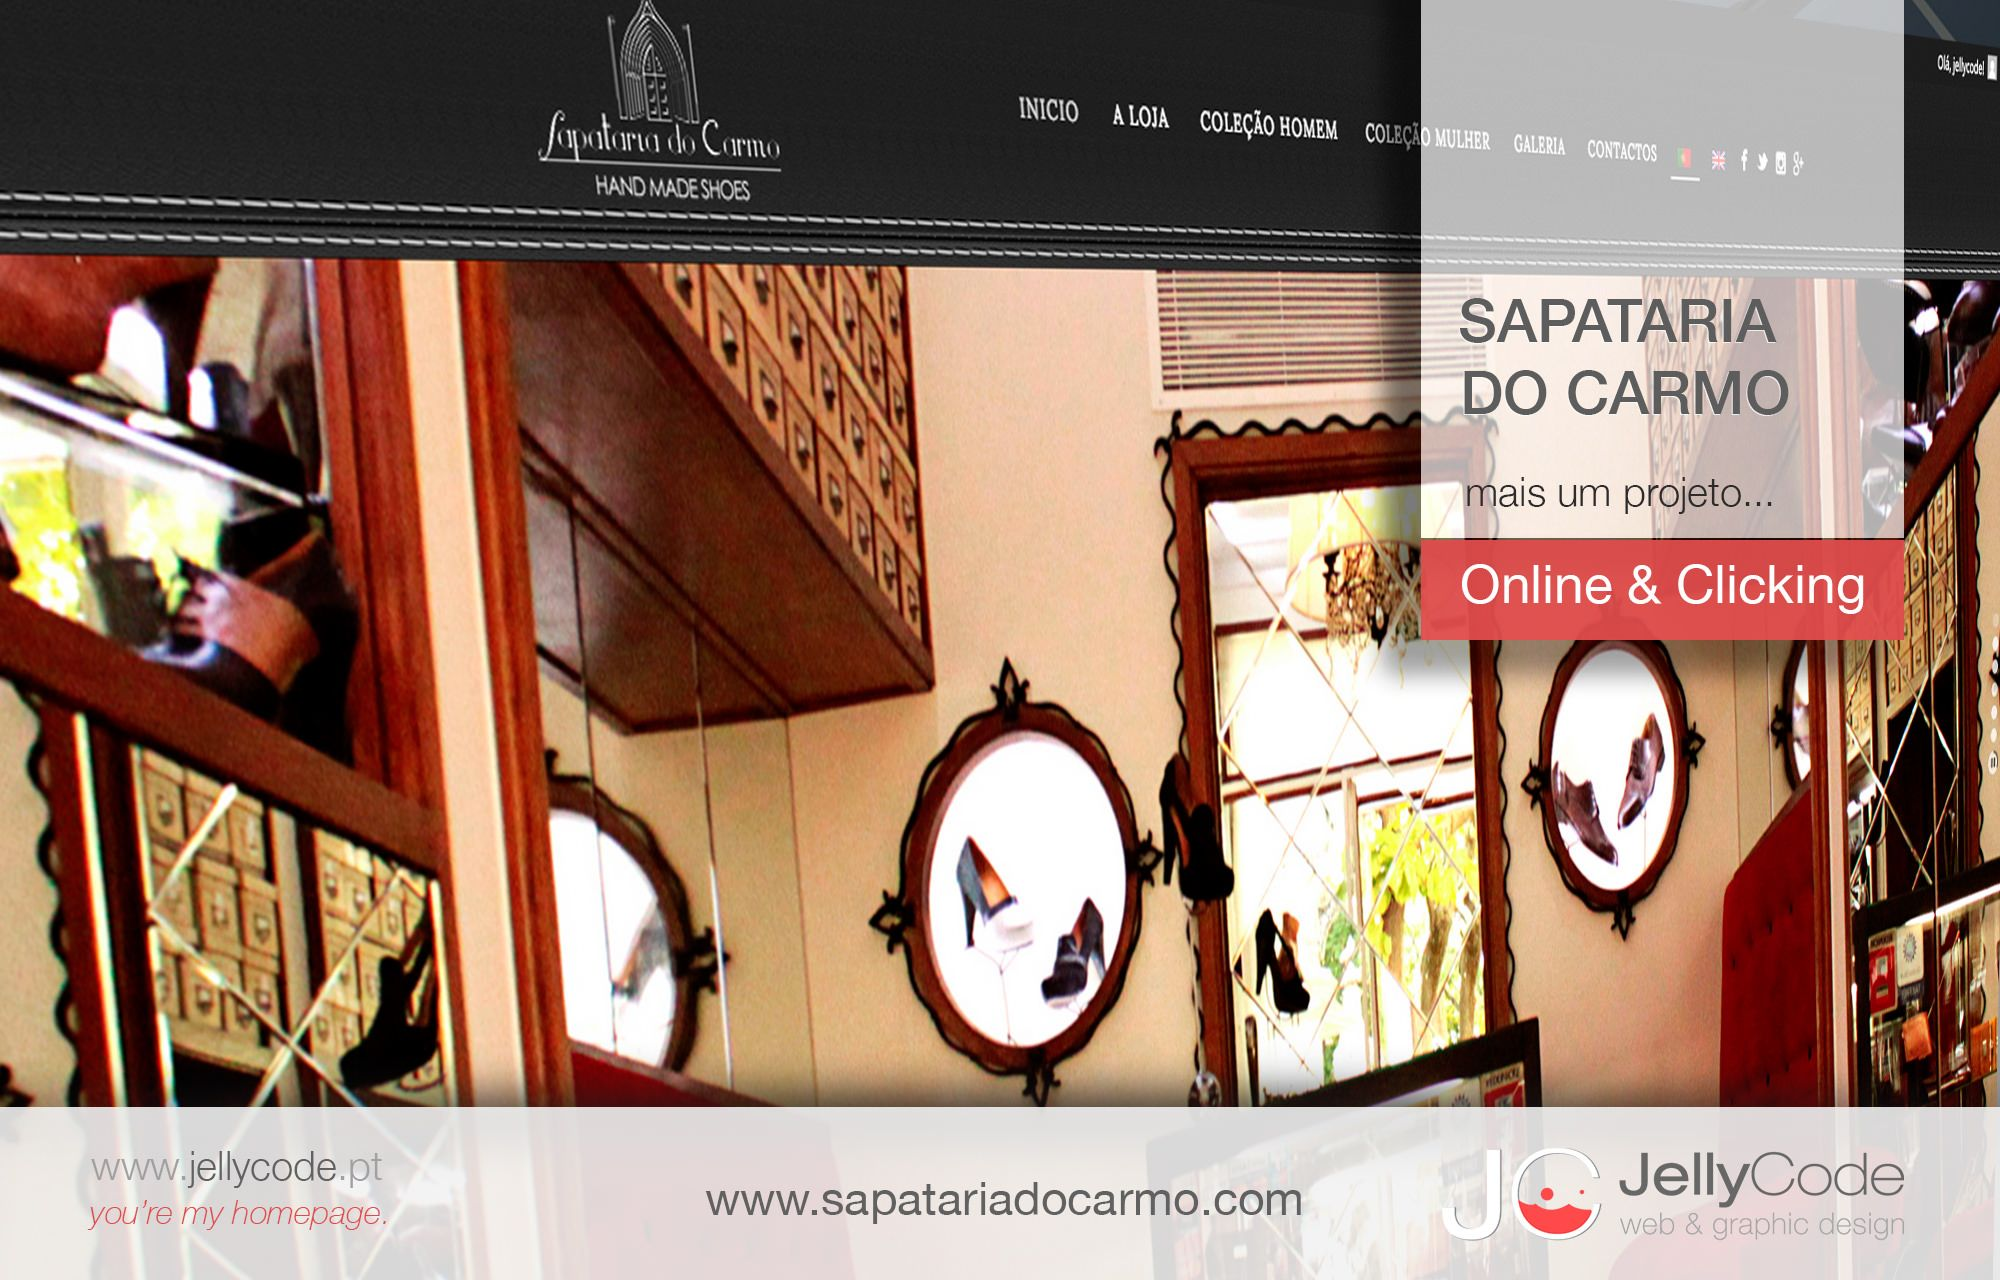 SAPATARIA DO CARMO - novo website by JellyCode.